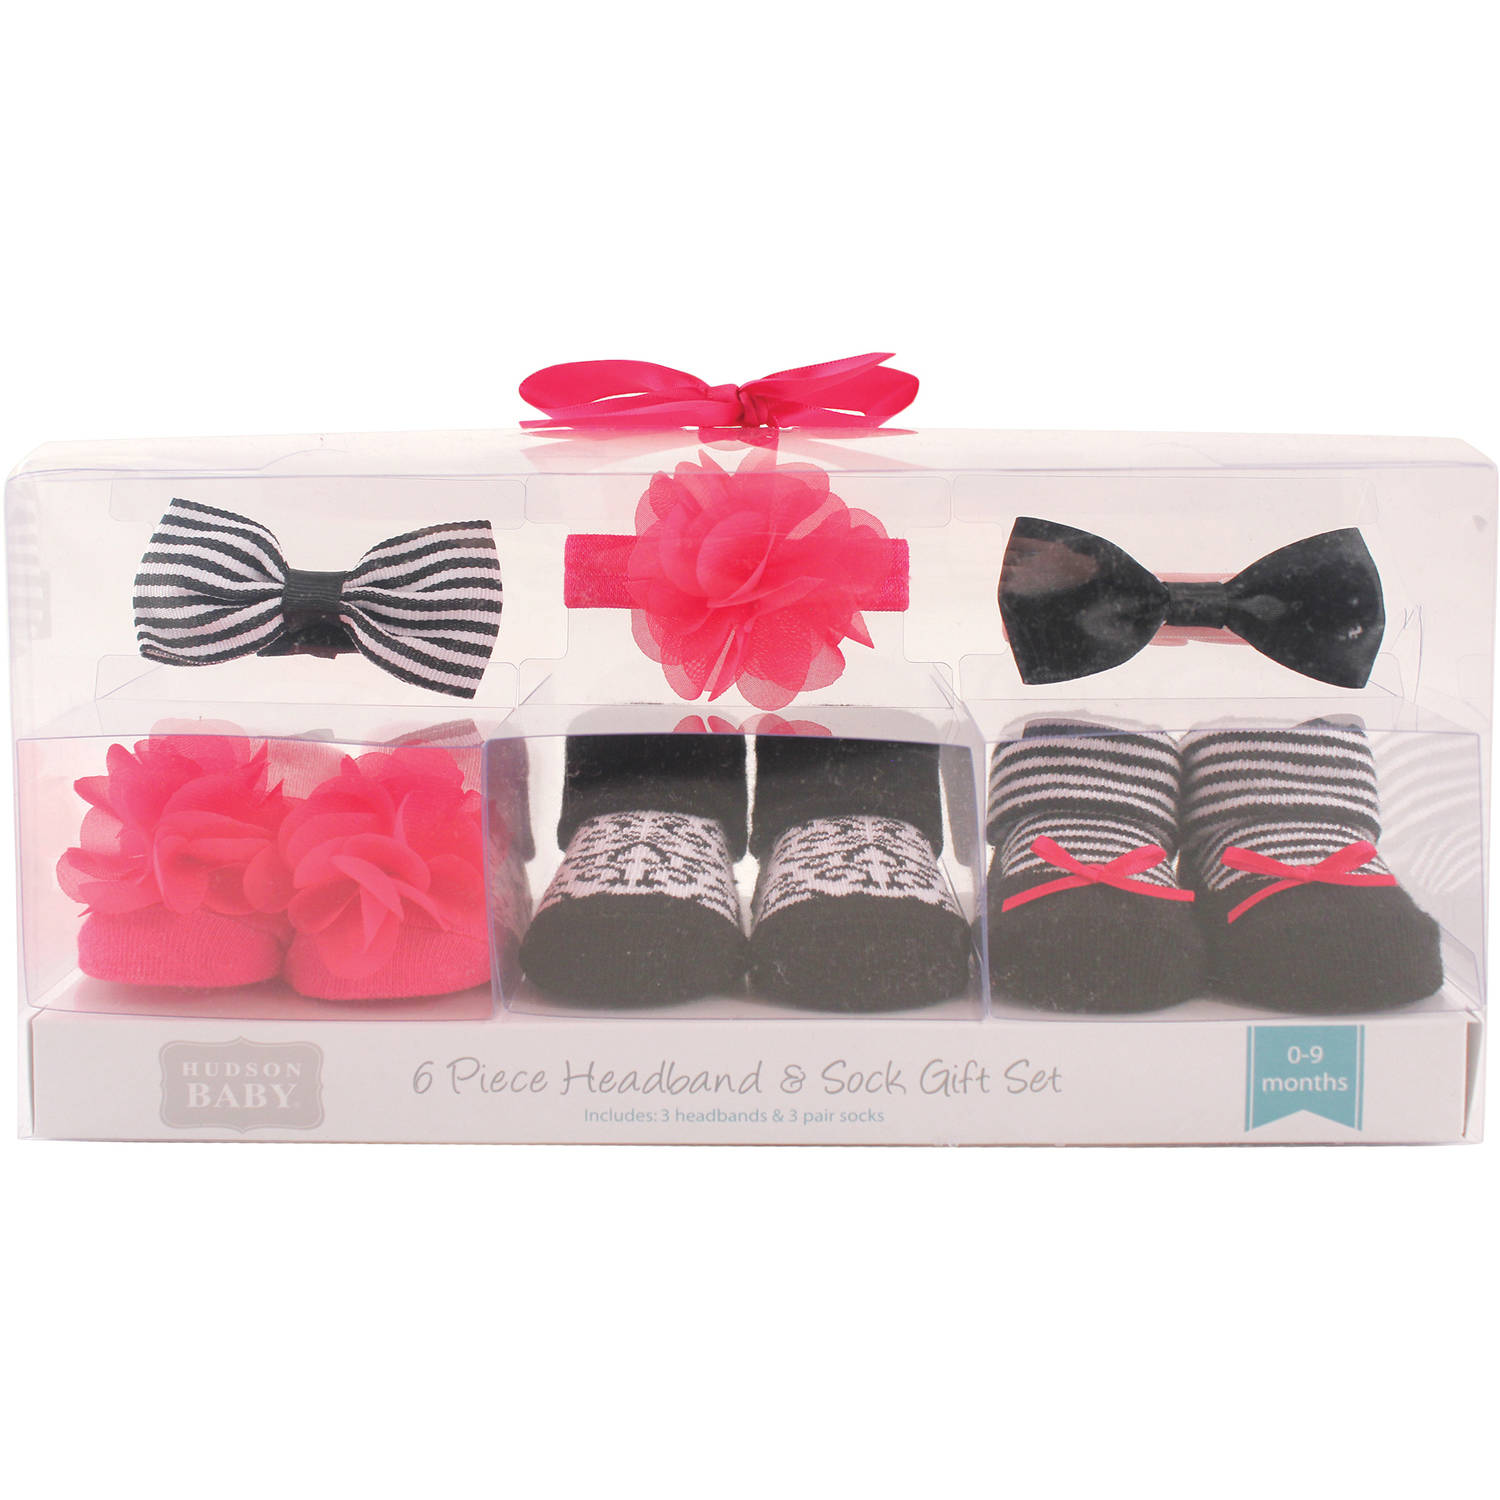 Hudson Baby Headband and Socks Set (end 11 12 2019 5 42 PM) 5395ce843fe